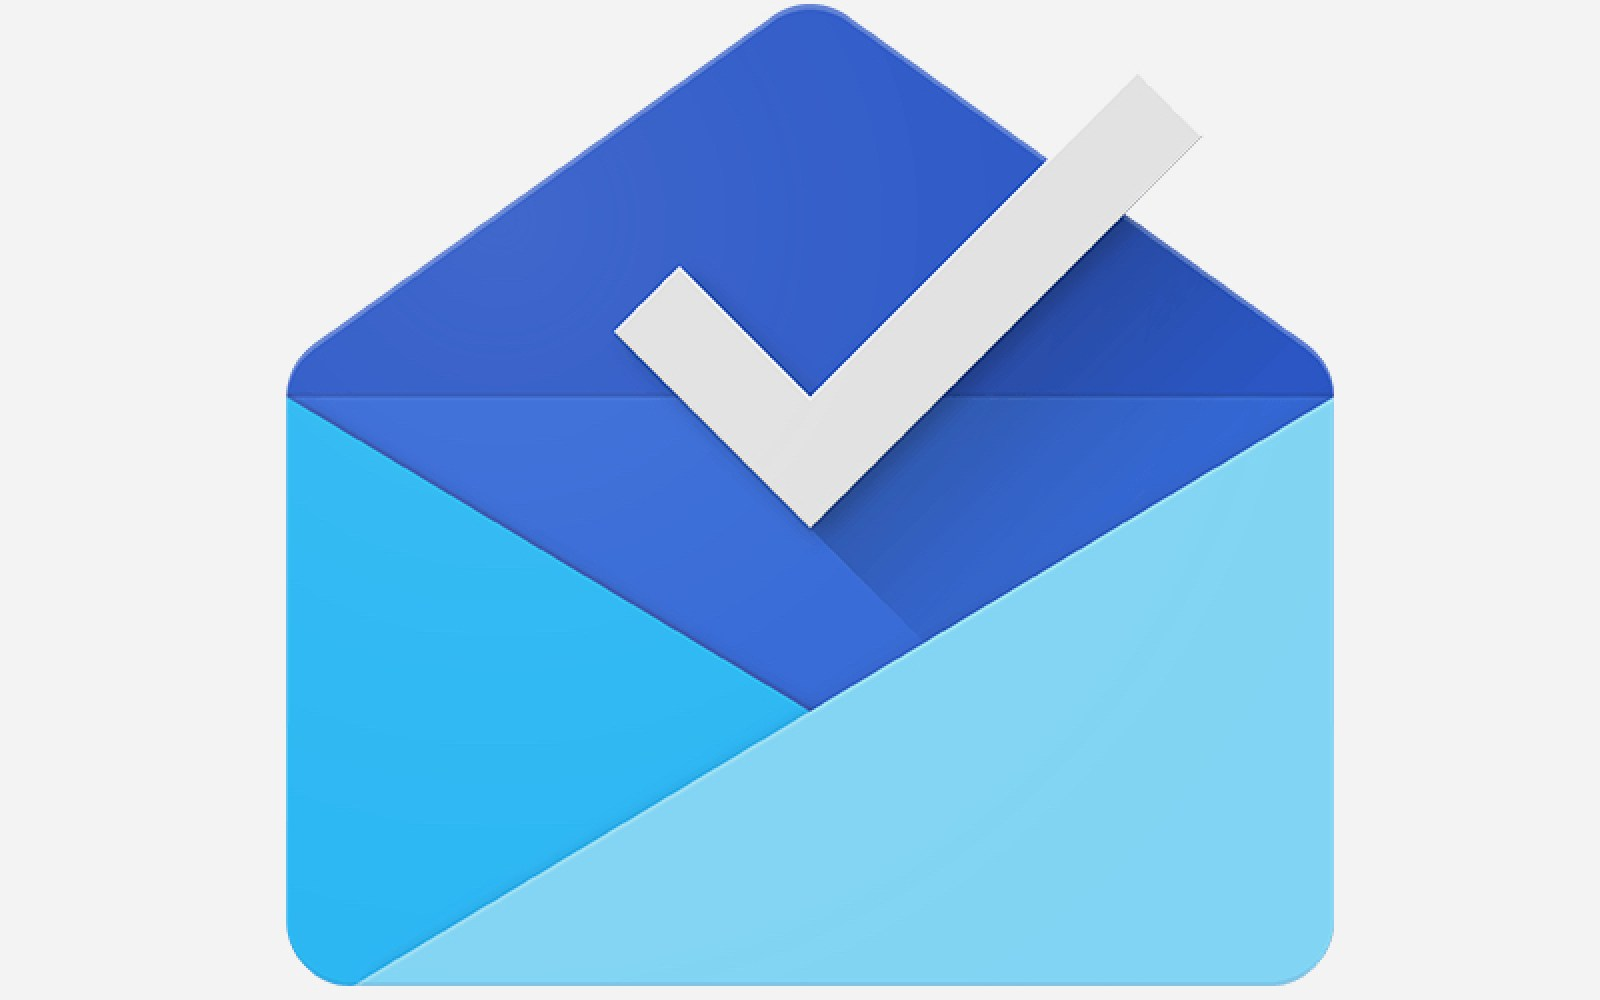 Inbox by Gmail app for iPhone will use AI-powered Smart Reply feature to respond to messages for you